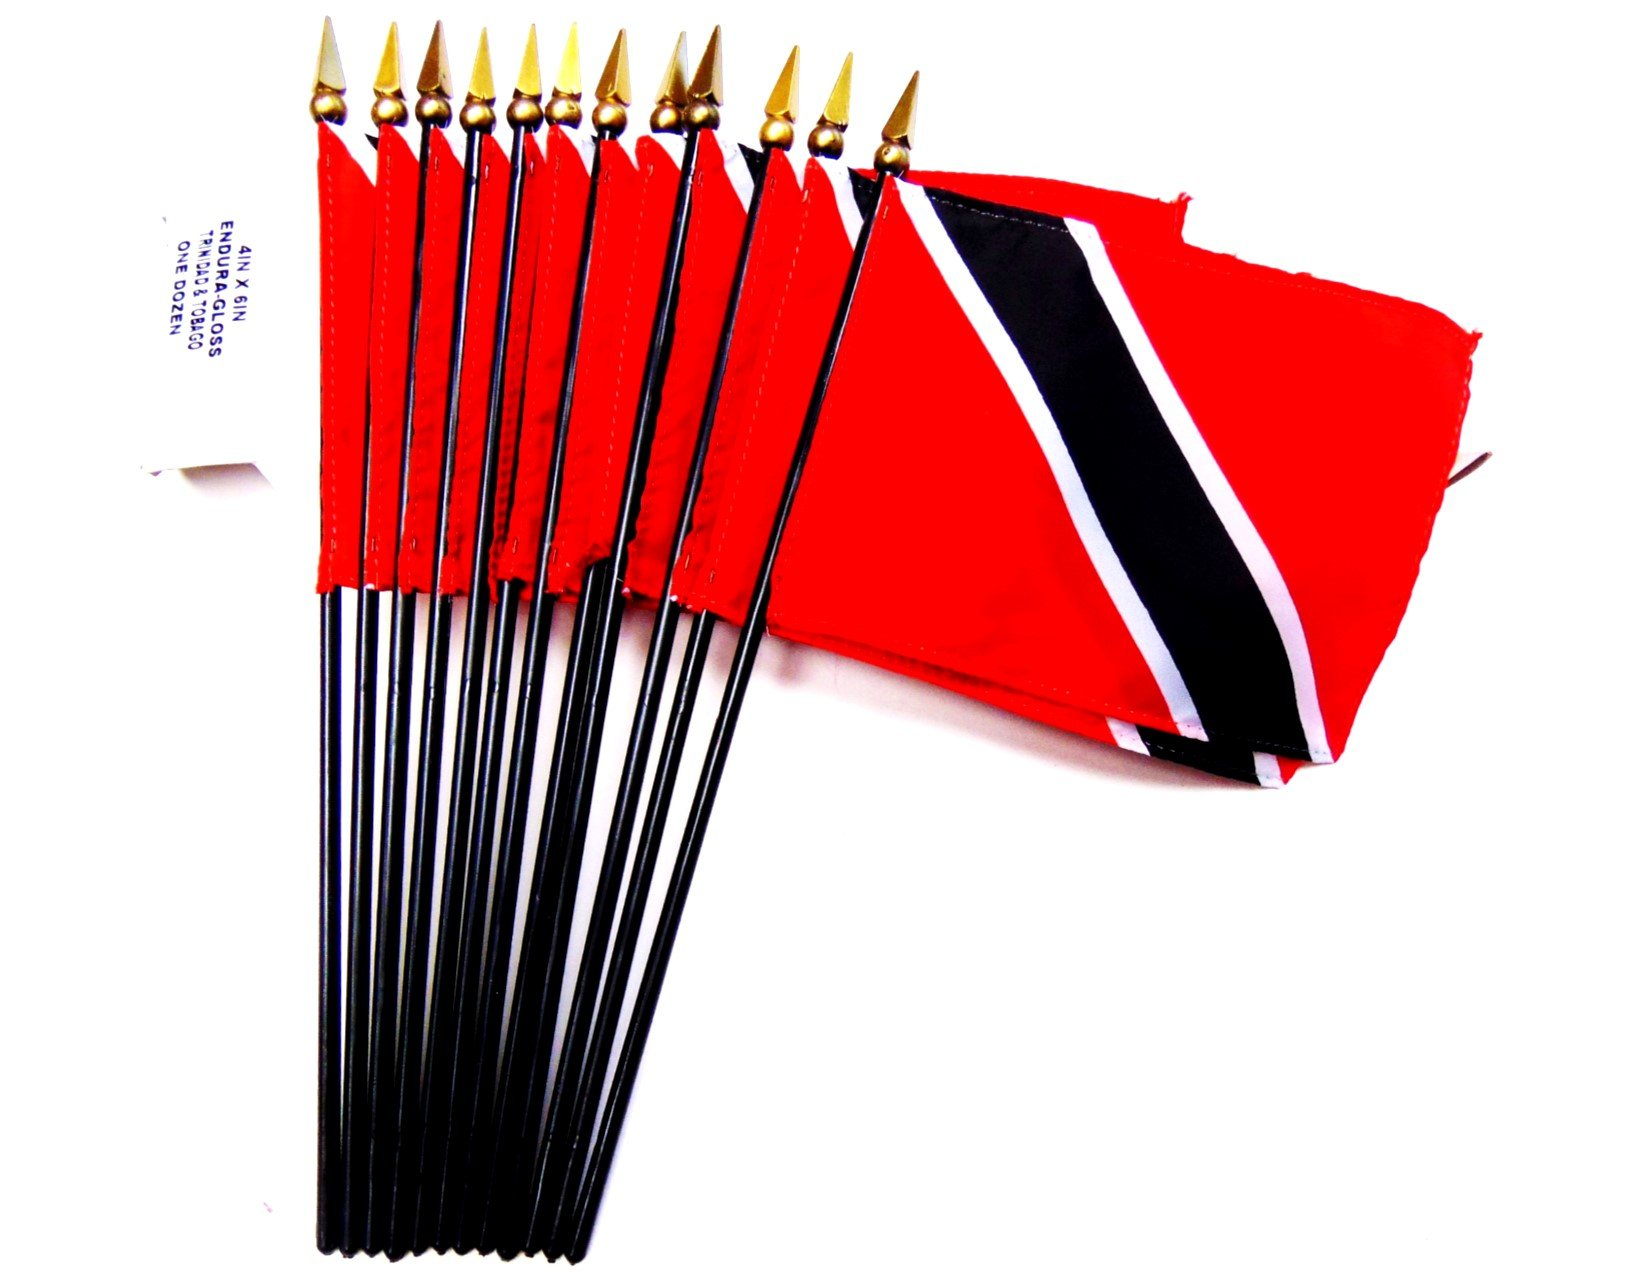 MADE IN USA!! Box of 12 Trinidad and Tobago 4''x6'' Miniature Desk & Table Flags; 12 American Made Small Mini Trinidad Flags in a Custom Made Cardboard Box Specifically Made for These Flags